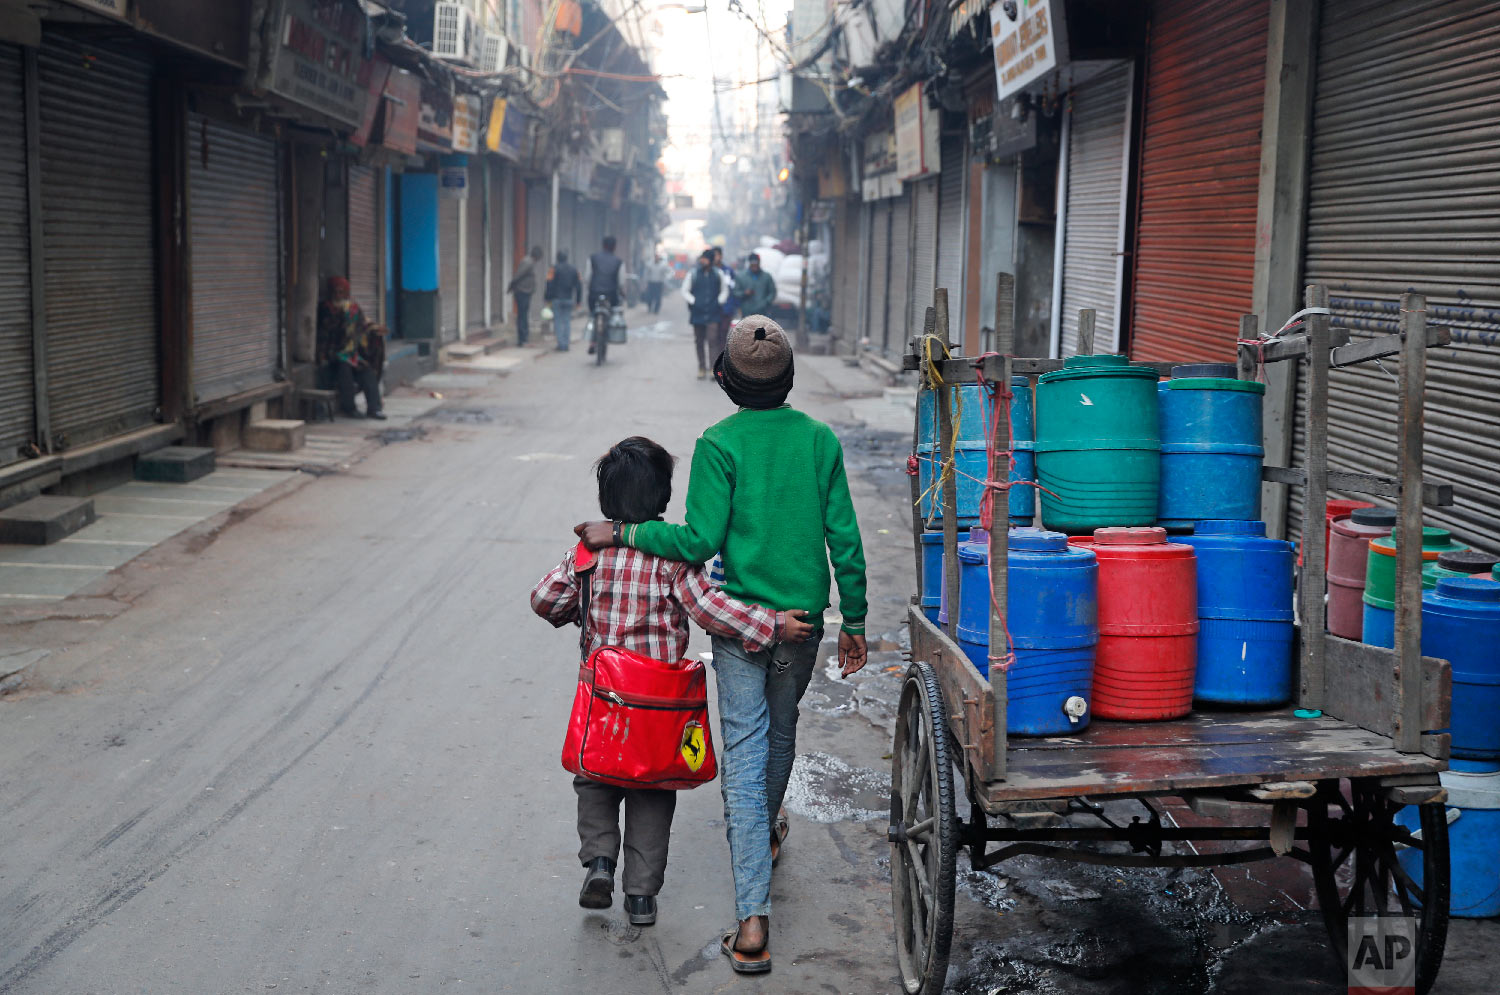 13-year-old Ajmeri, right, walks his younger brother Farmaan to school in New Delhi, India, on Jan. 18, 2019. (AP Photo/Altaf Qadri)